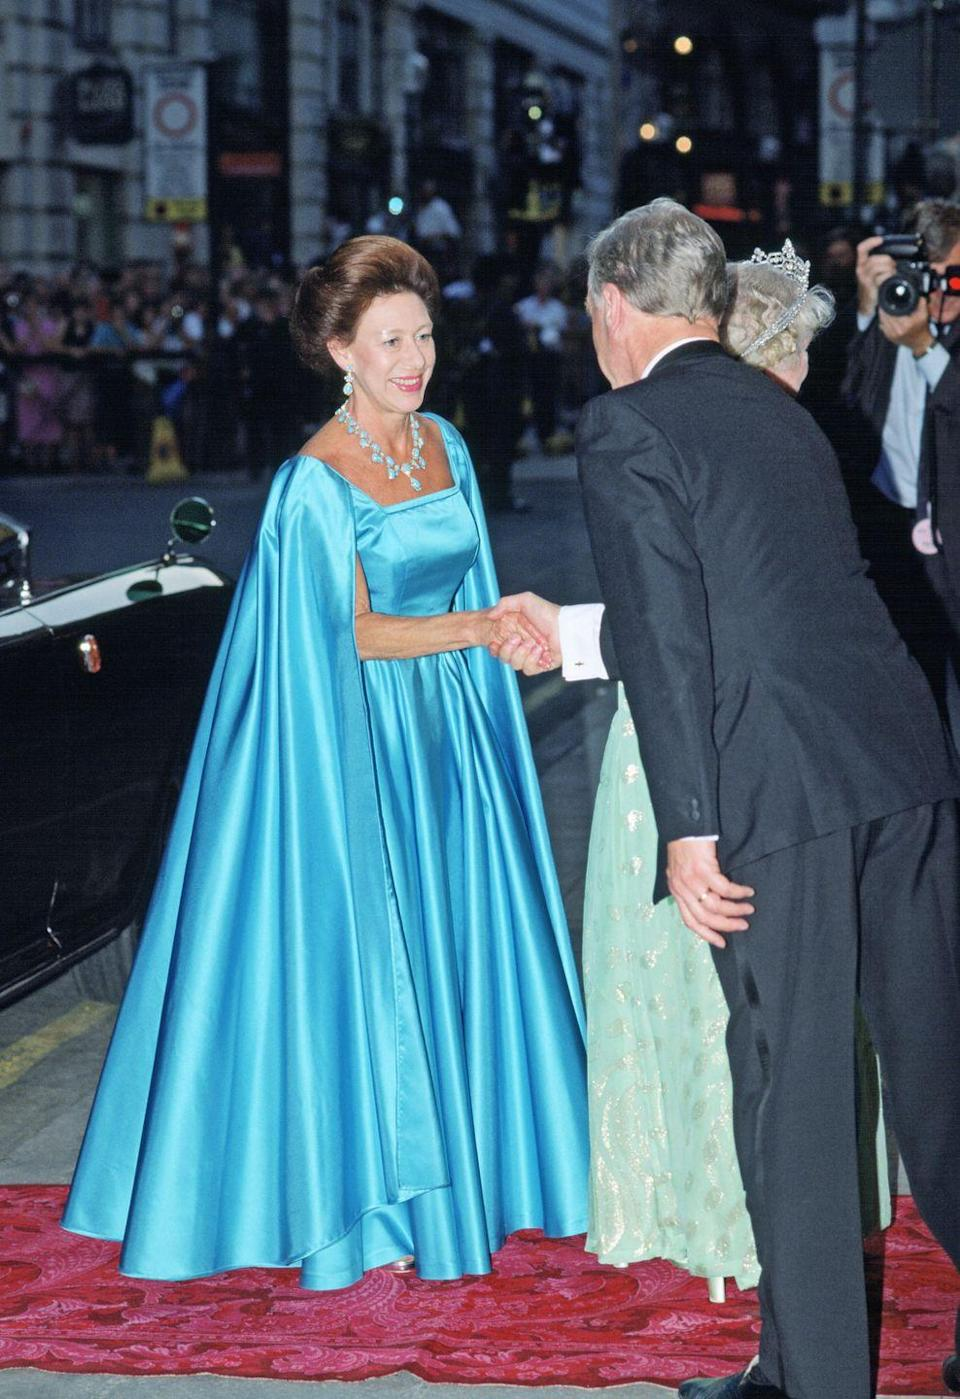 "<p>Arriving at the London Palladium, Princess Margaret wears all blue for a birthday gala show for the <a href=""https://www.youtube.com/watch?v=AMNtwK9AGnU"" rel=""nofollow noopener"" target=""_blank"" data-ylk=""slk:Queen Mother's 90th birthday"" class=""link rapid-noclick-resp"">Queen Mother's 90th birthday</a>. </p>"